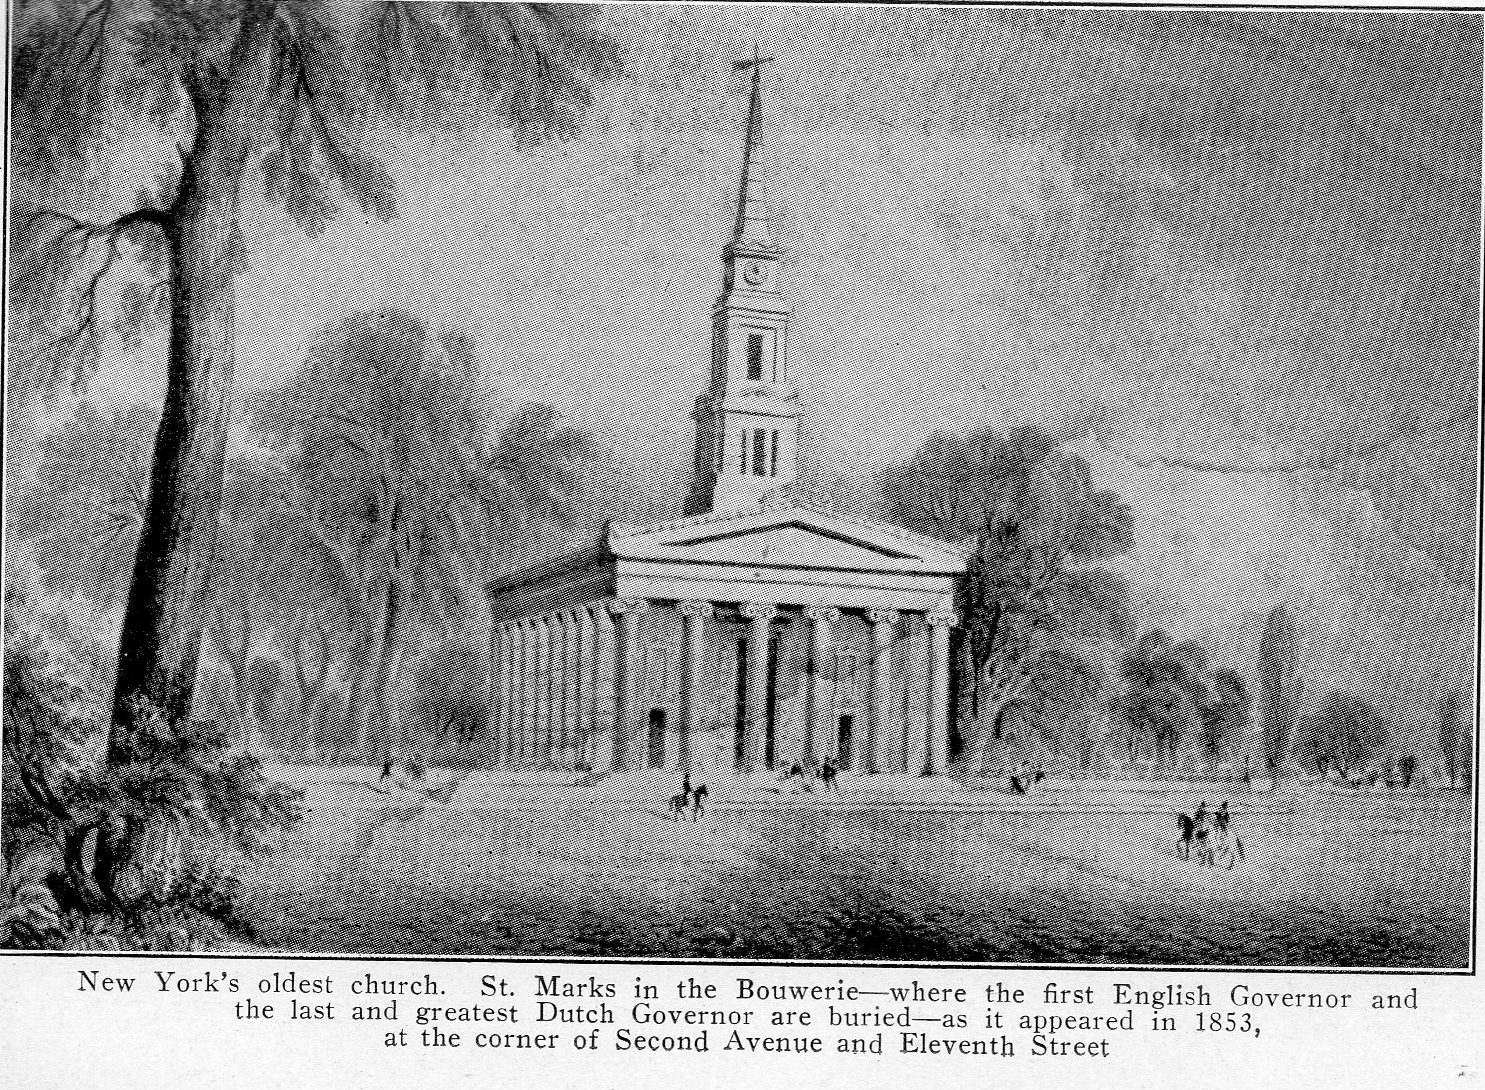 St. Mark's, 1853 (image from Ephemeral New York)